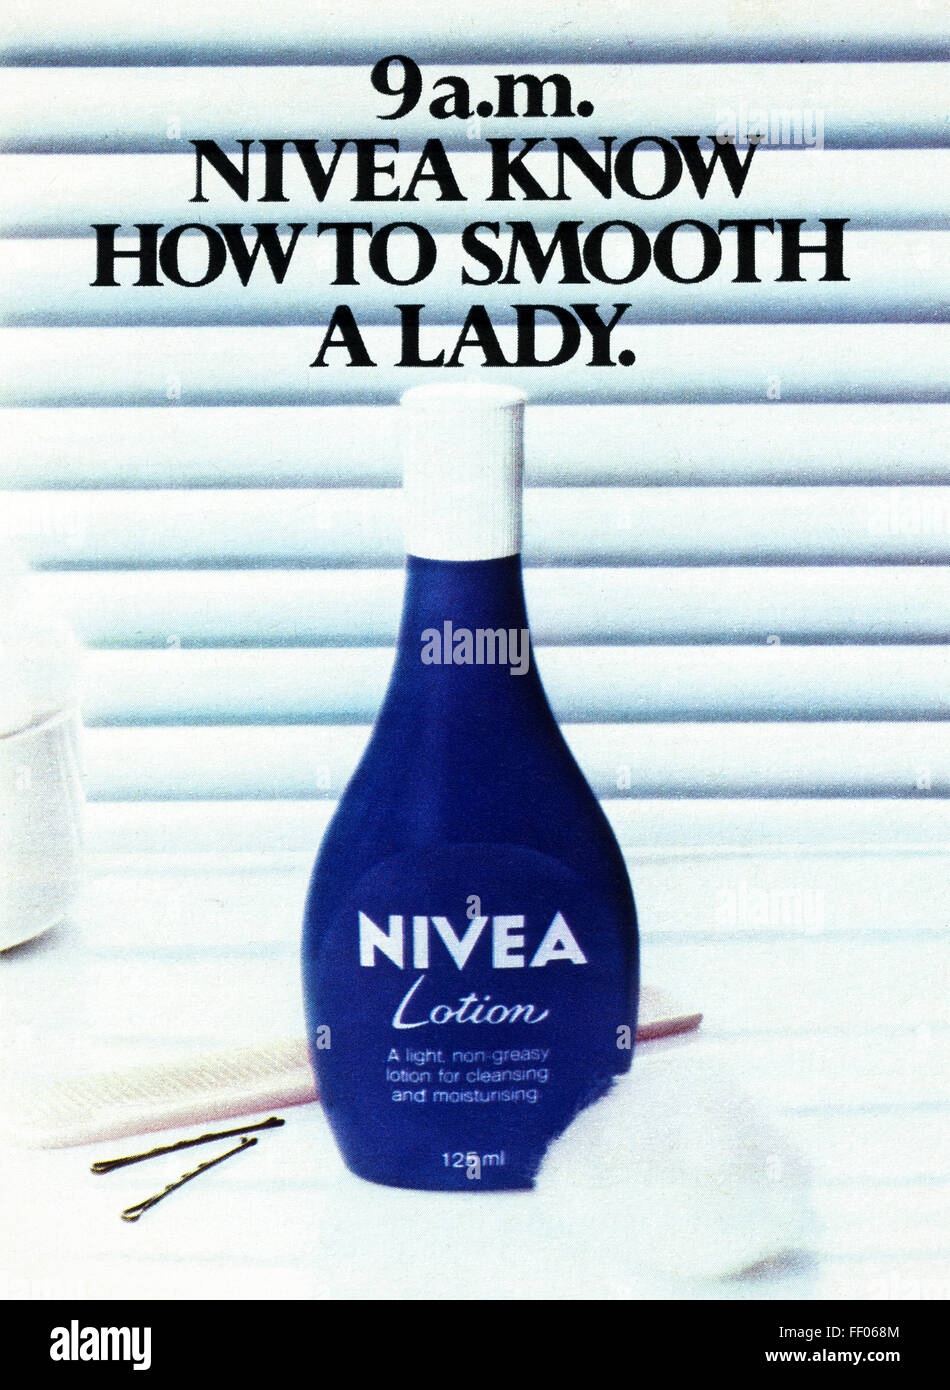 Original full page colour vintage advert from 1970s. Advertisement dated 1978 advertising Nivea lotion for cleansing - Stock Image